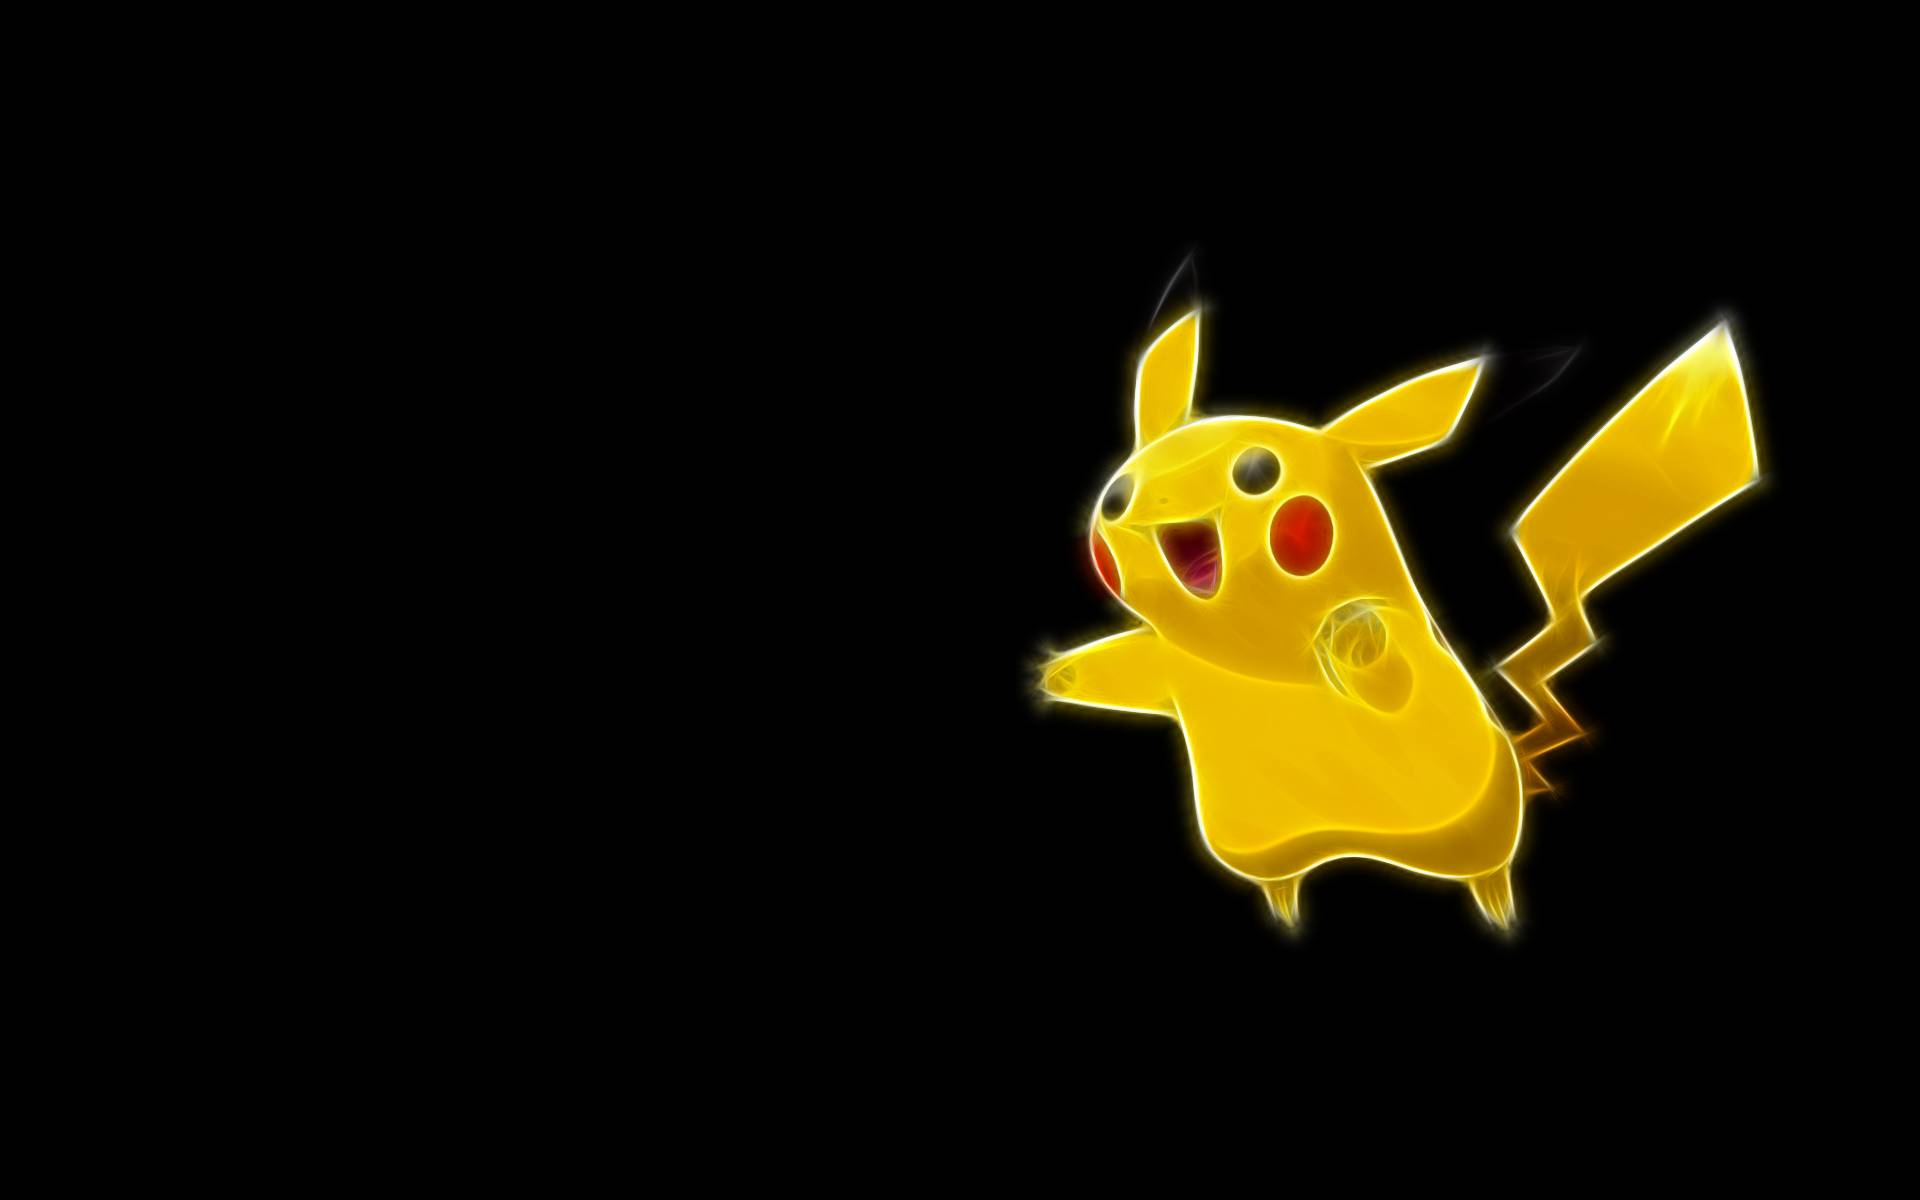 Pikachu Wallpaper Awesome wallpaper with Pikachu 1920x1200